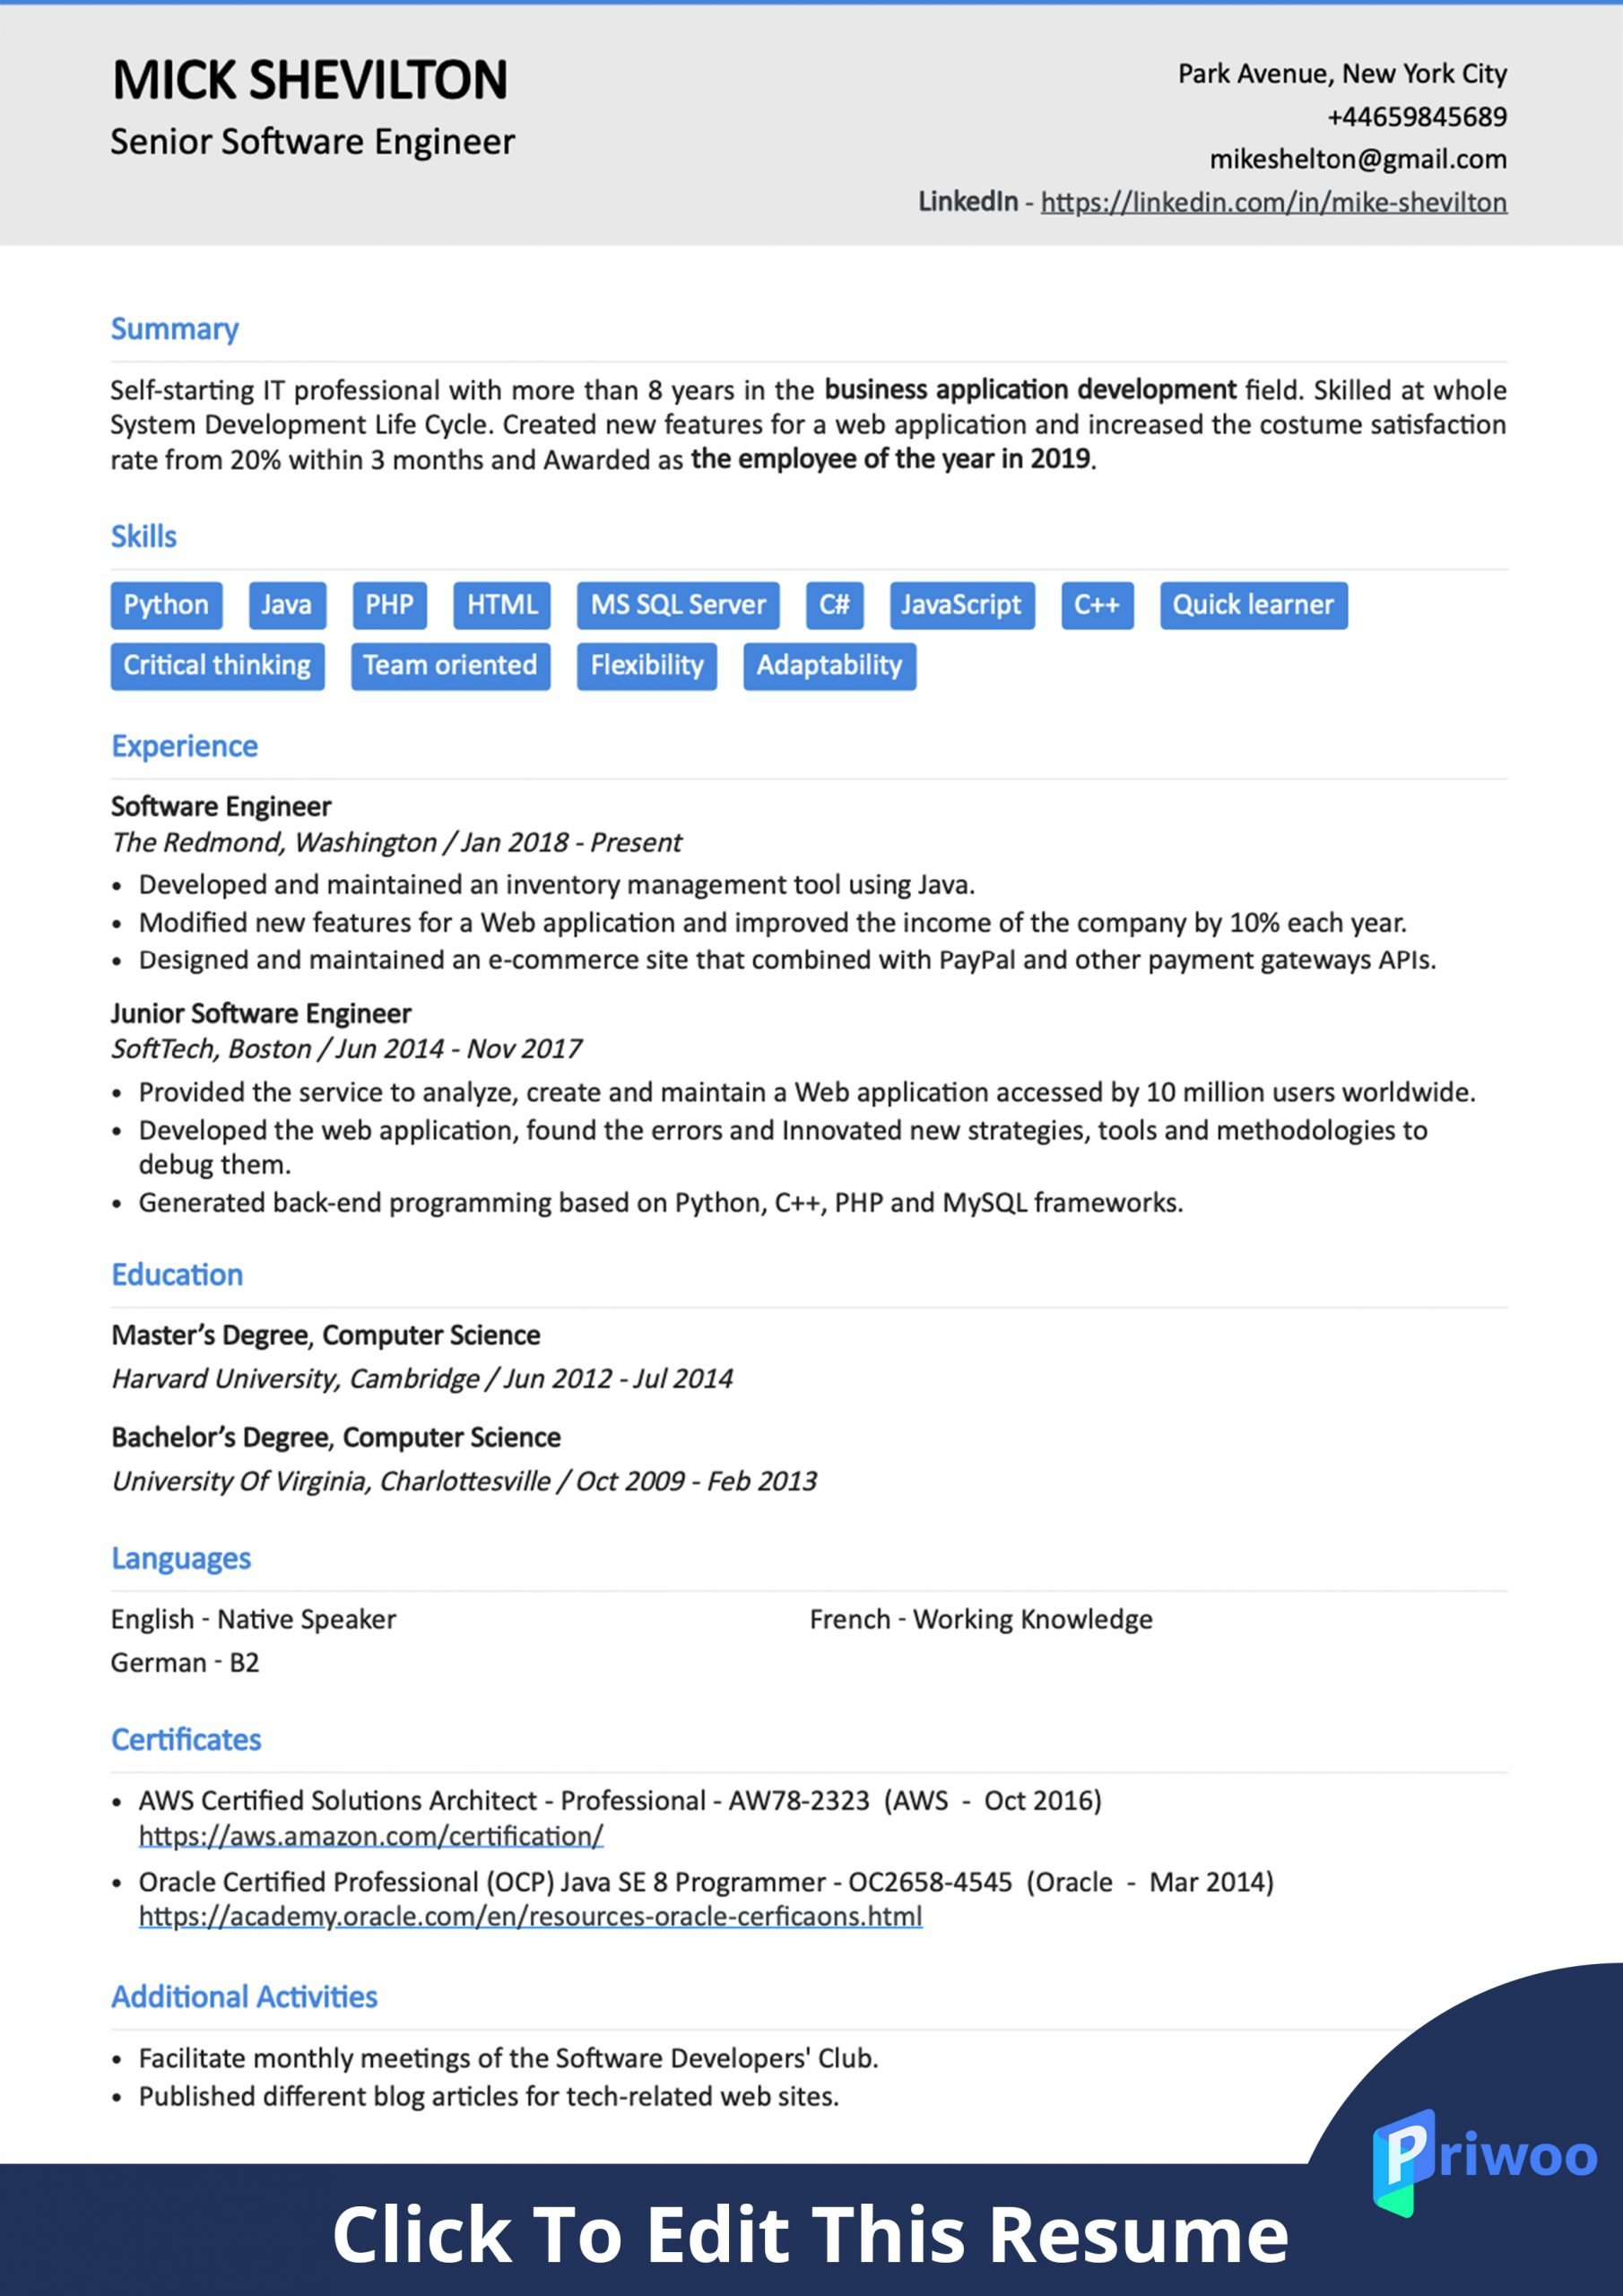 software engineer resume example best action verbs skills priwoo good format for scaled Resume Good Resume Format For Software Engineer